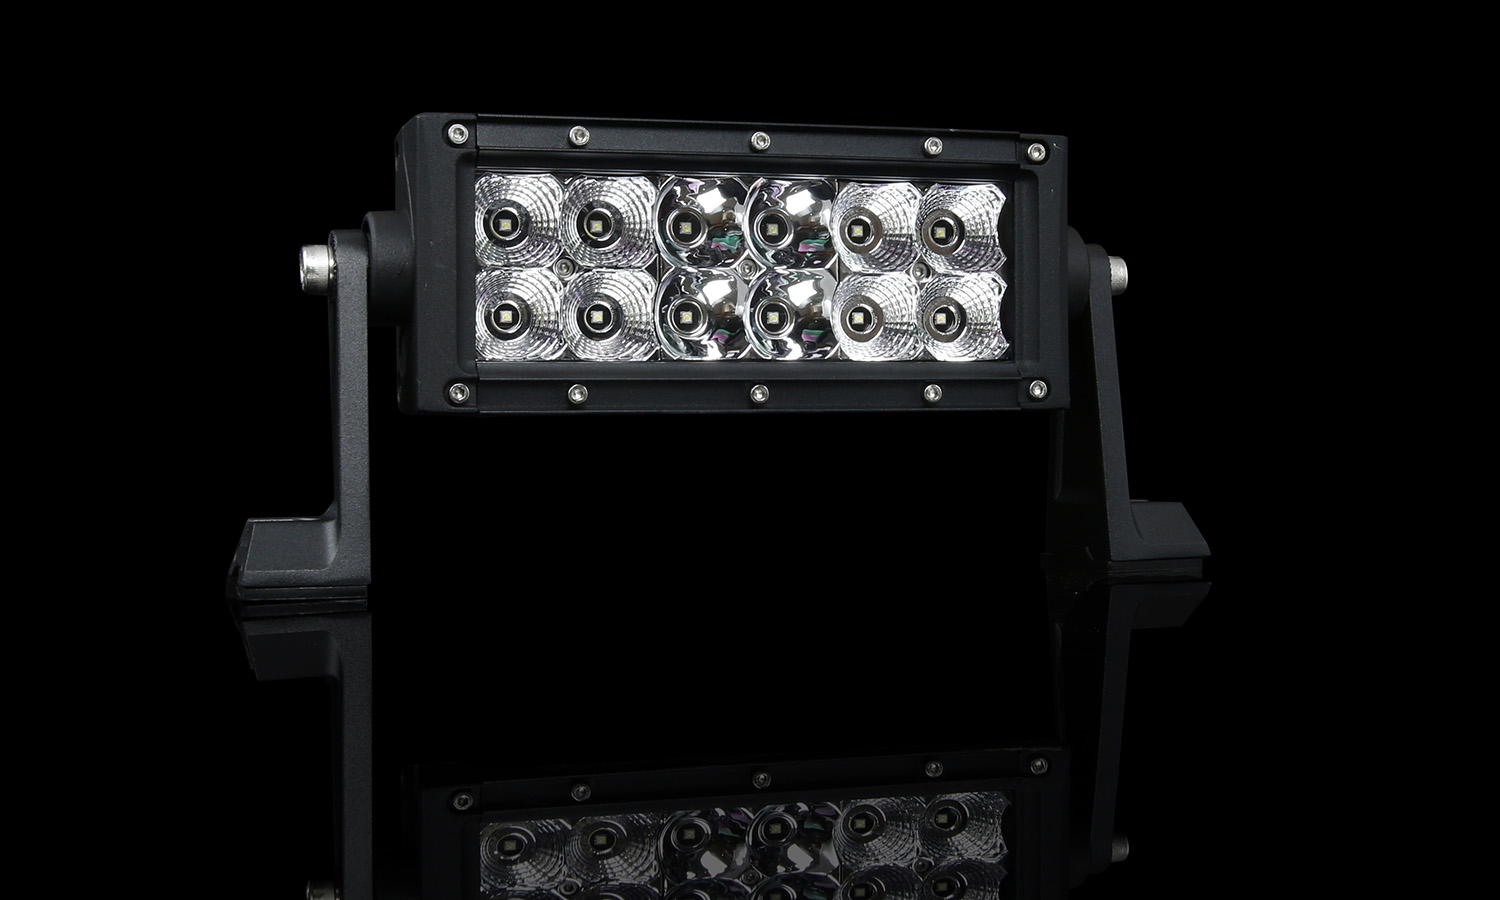 Led Light Bars Hard Korr Nz Leg Wiring Harness Include Switch Kit Support 120w Xd Series 8 Dual Row Bar Xdd220